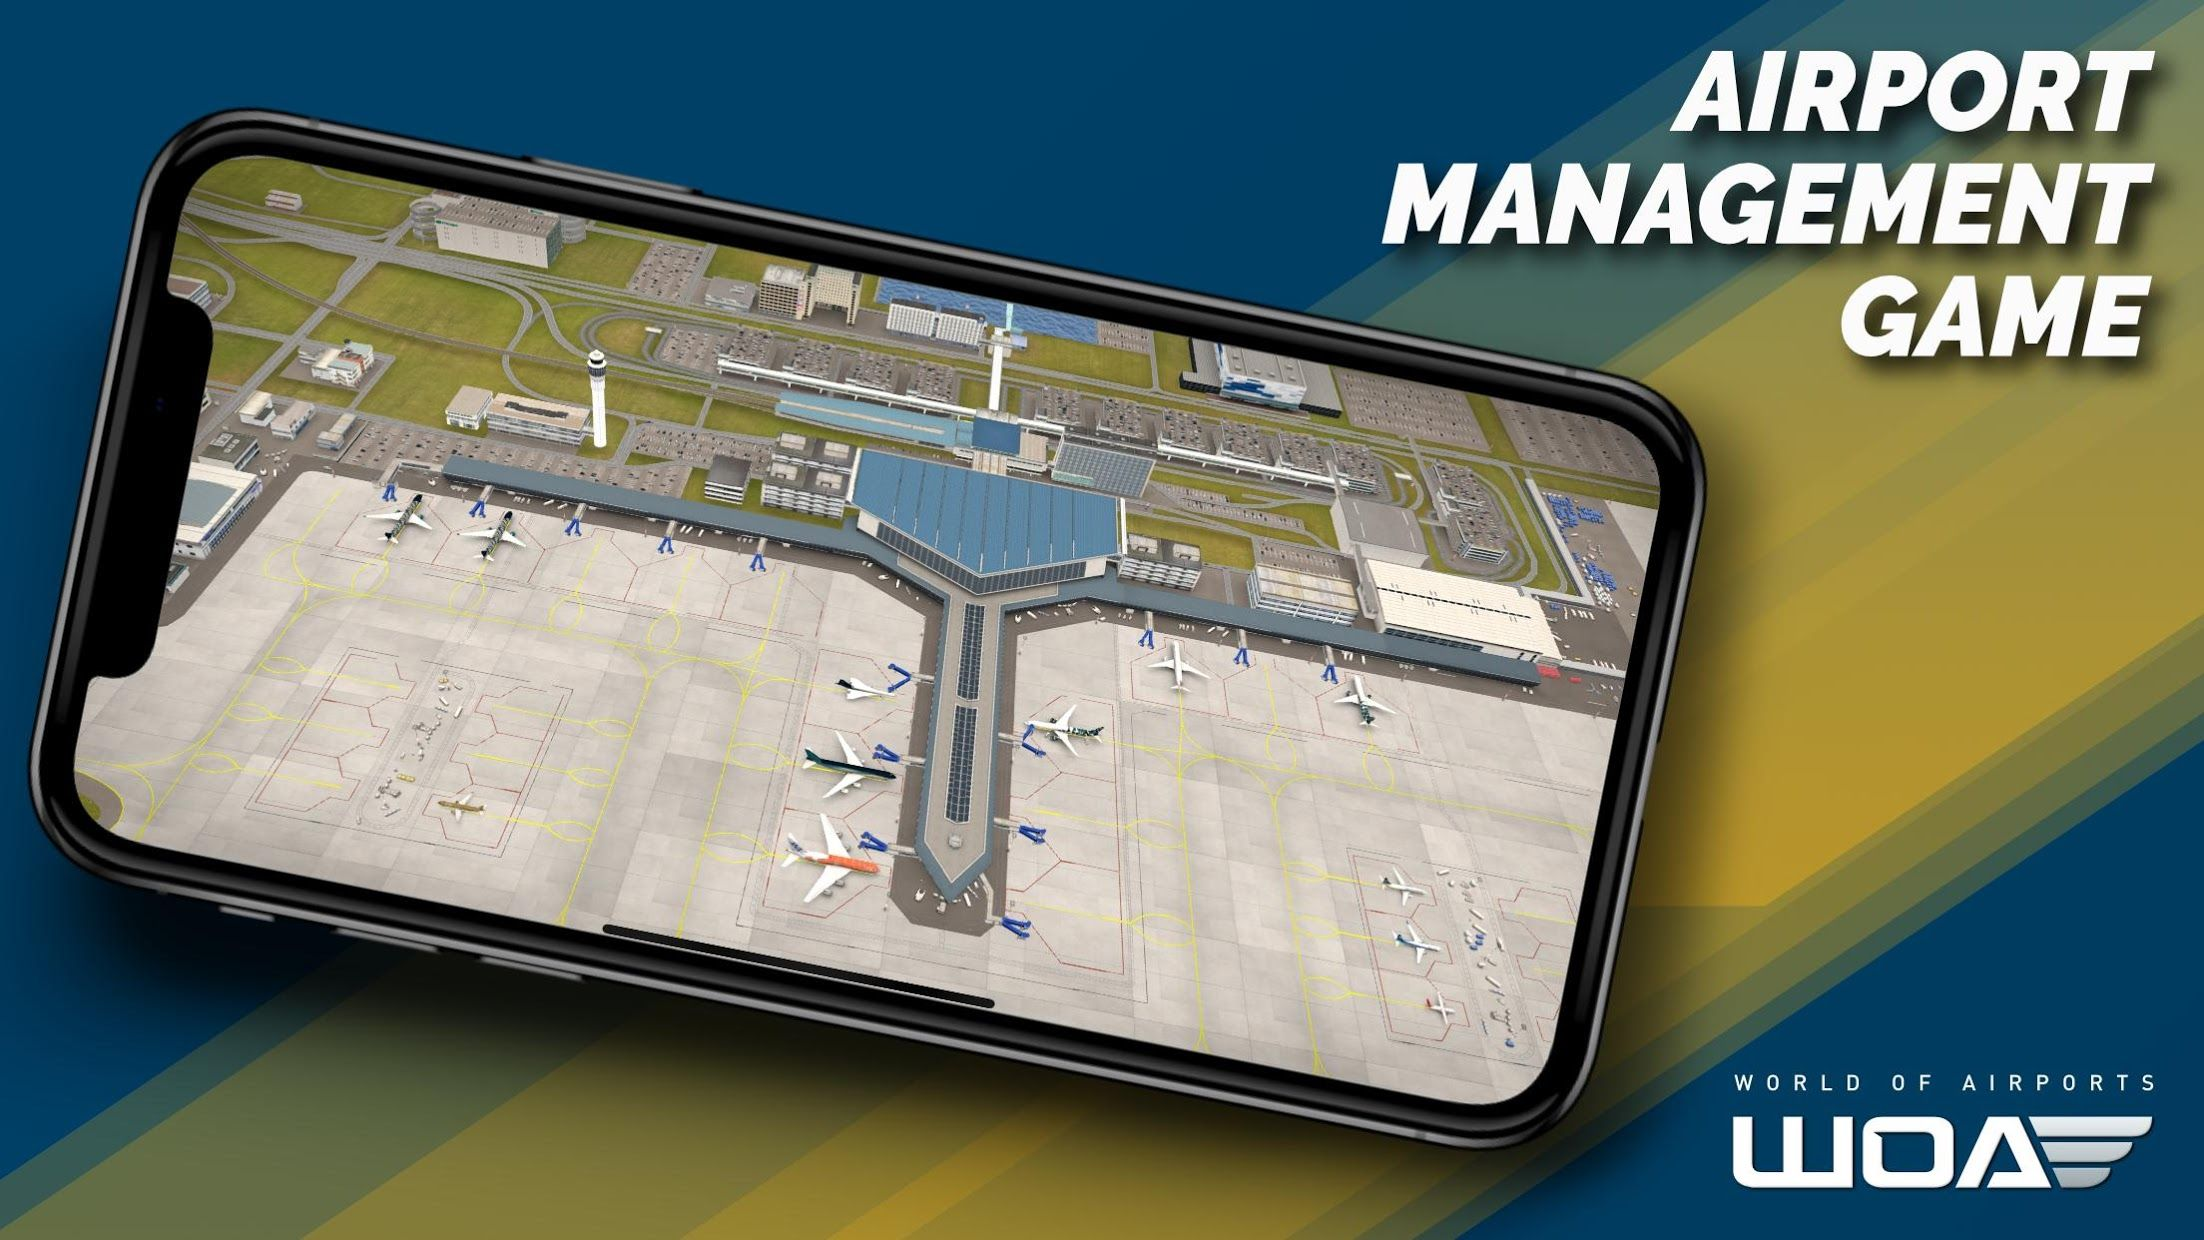 World of Airports 游戏截图1